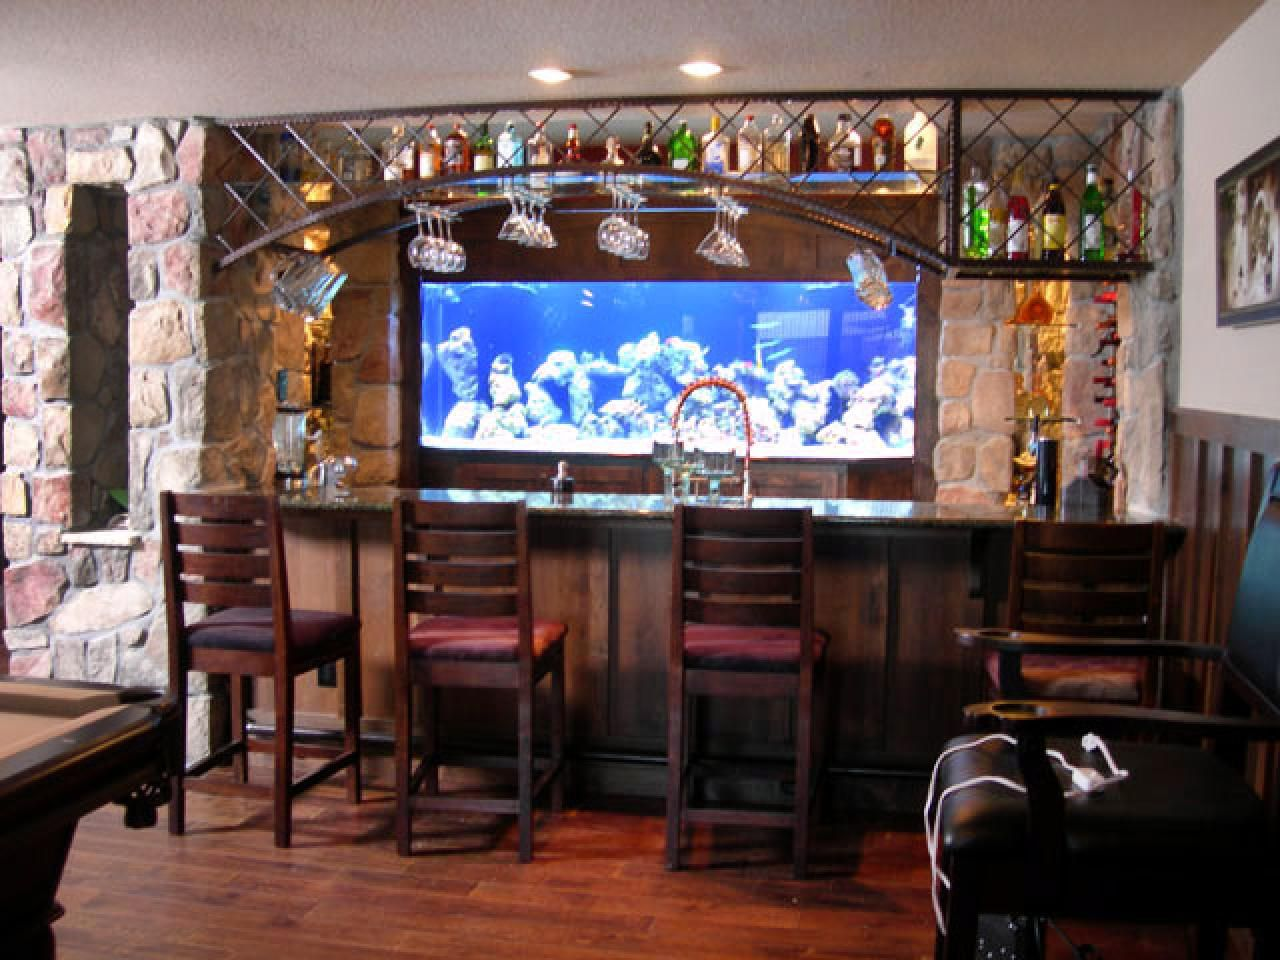 Home bar ideas 89 design options hgtv kitchen design for Home bar decor